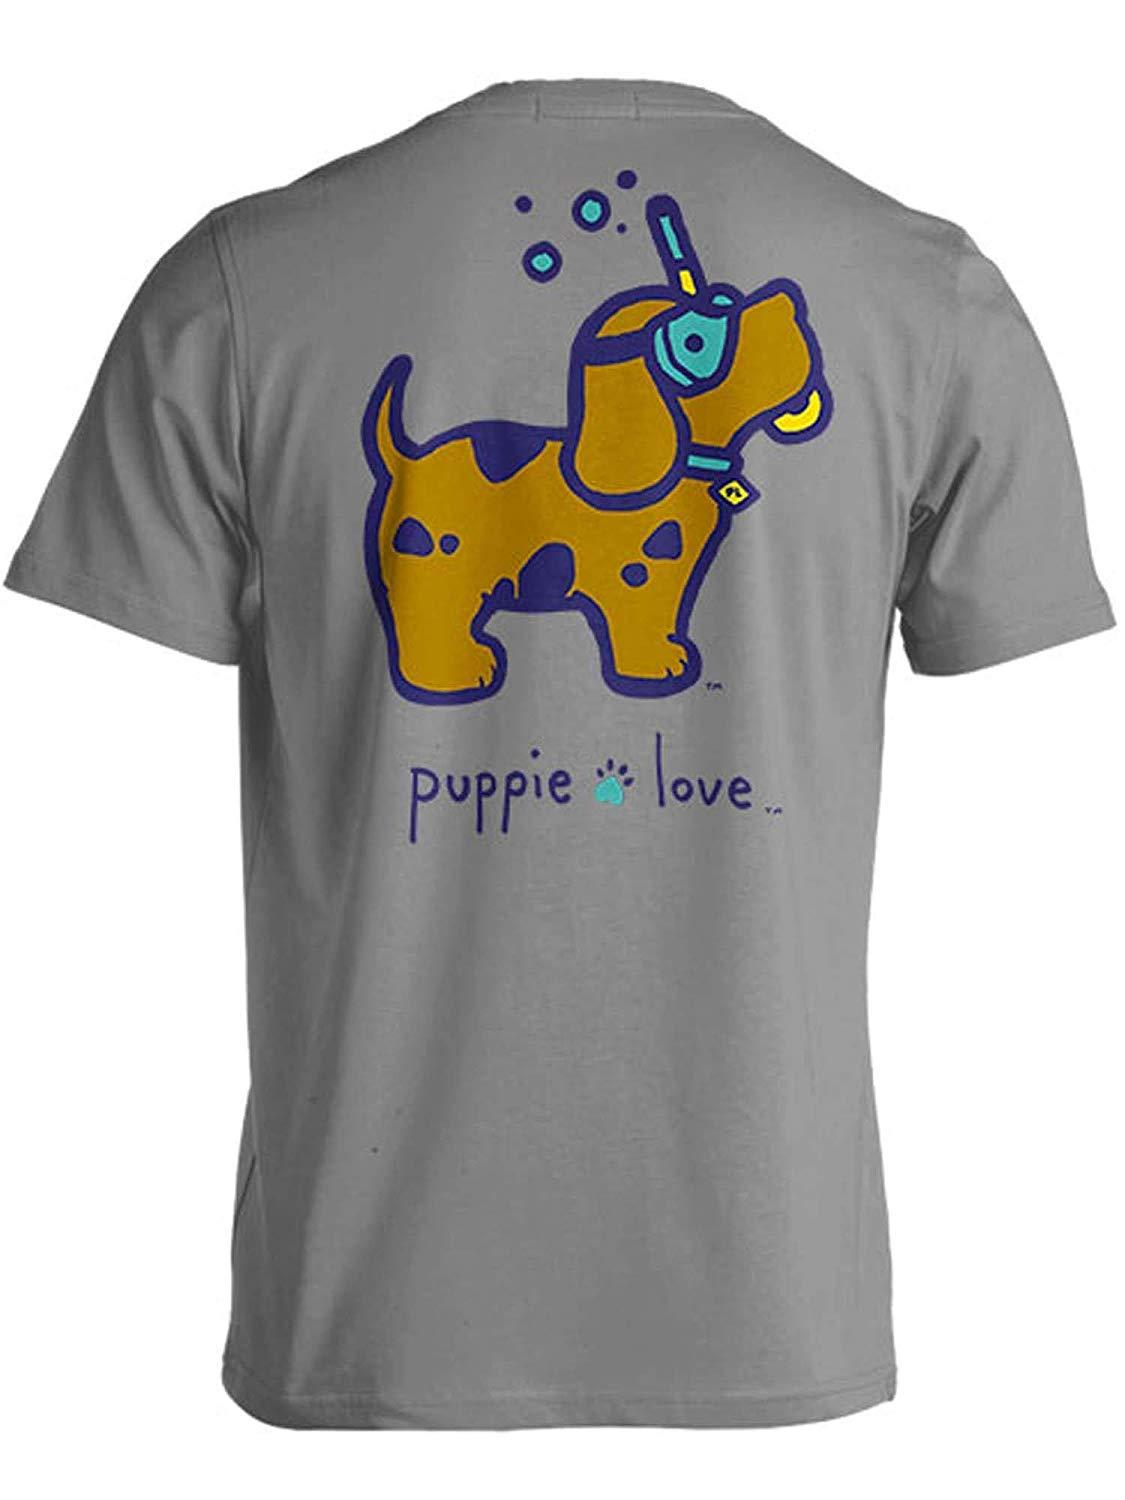 Puppie Love Rescue Dog Adult Unisex Short Sleeve Graphic T-Shirt, Scuba Doo Pup